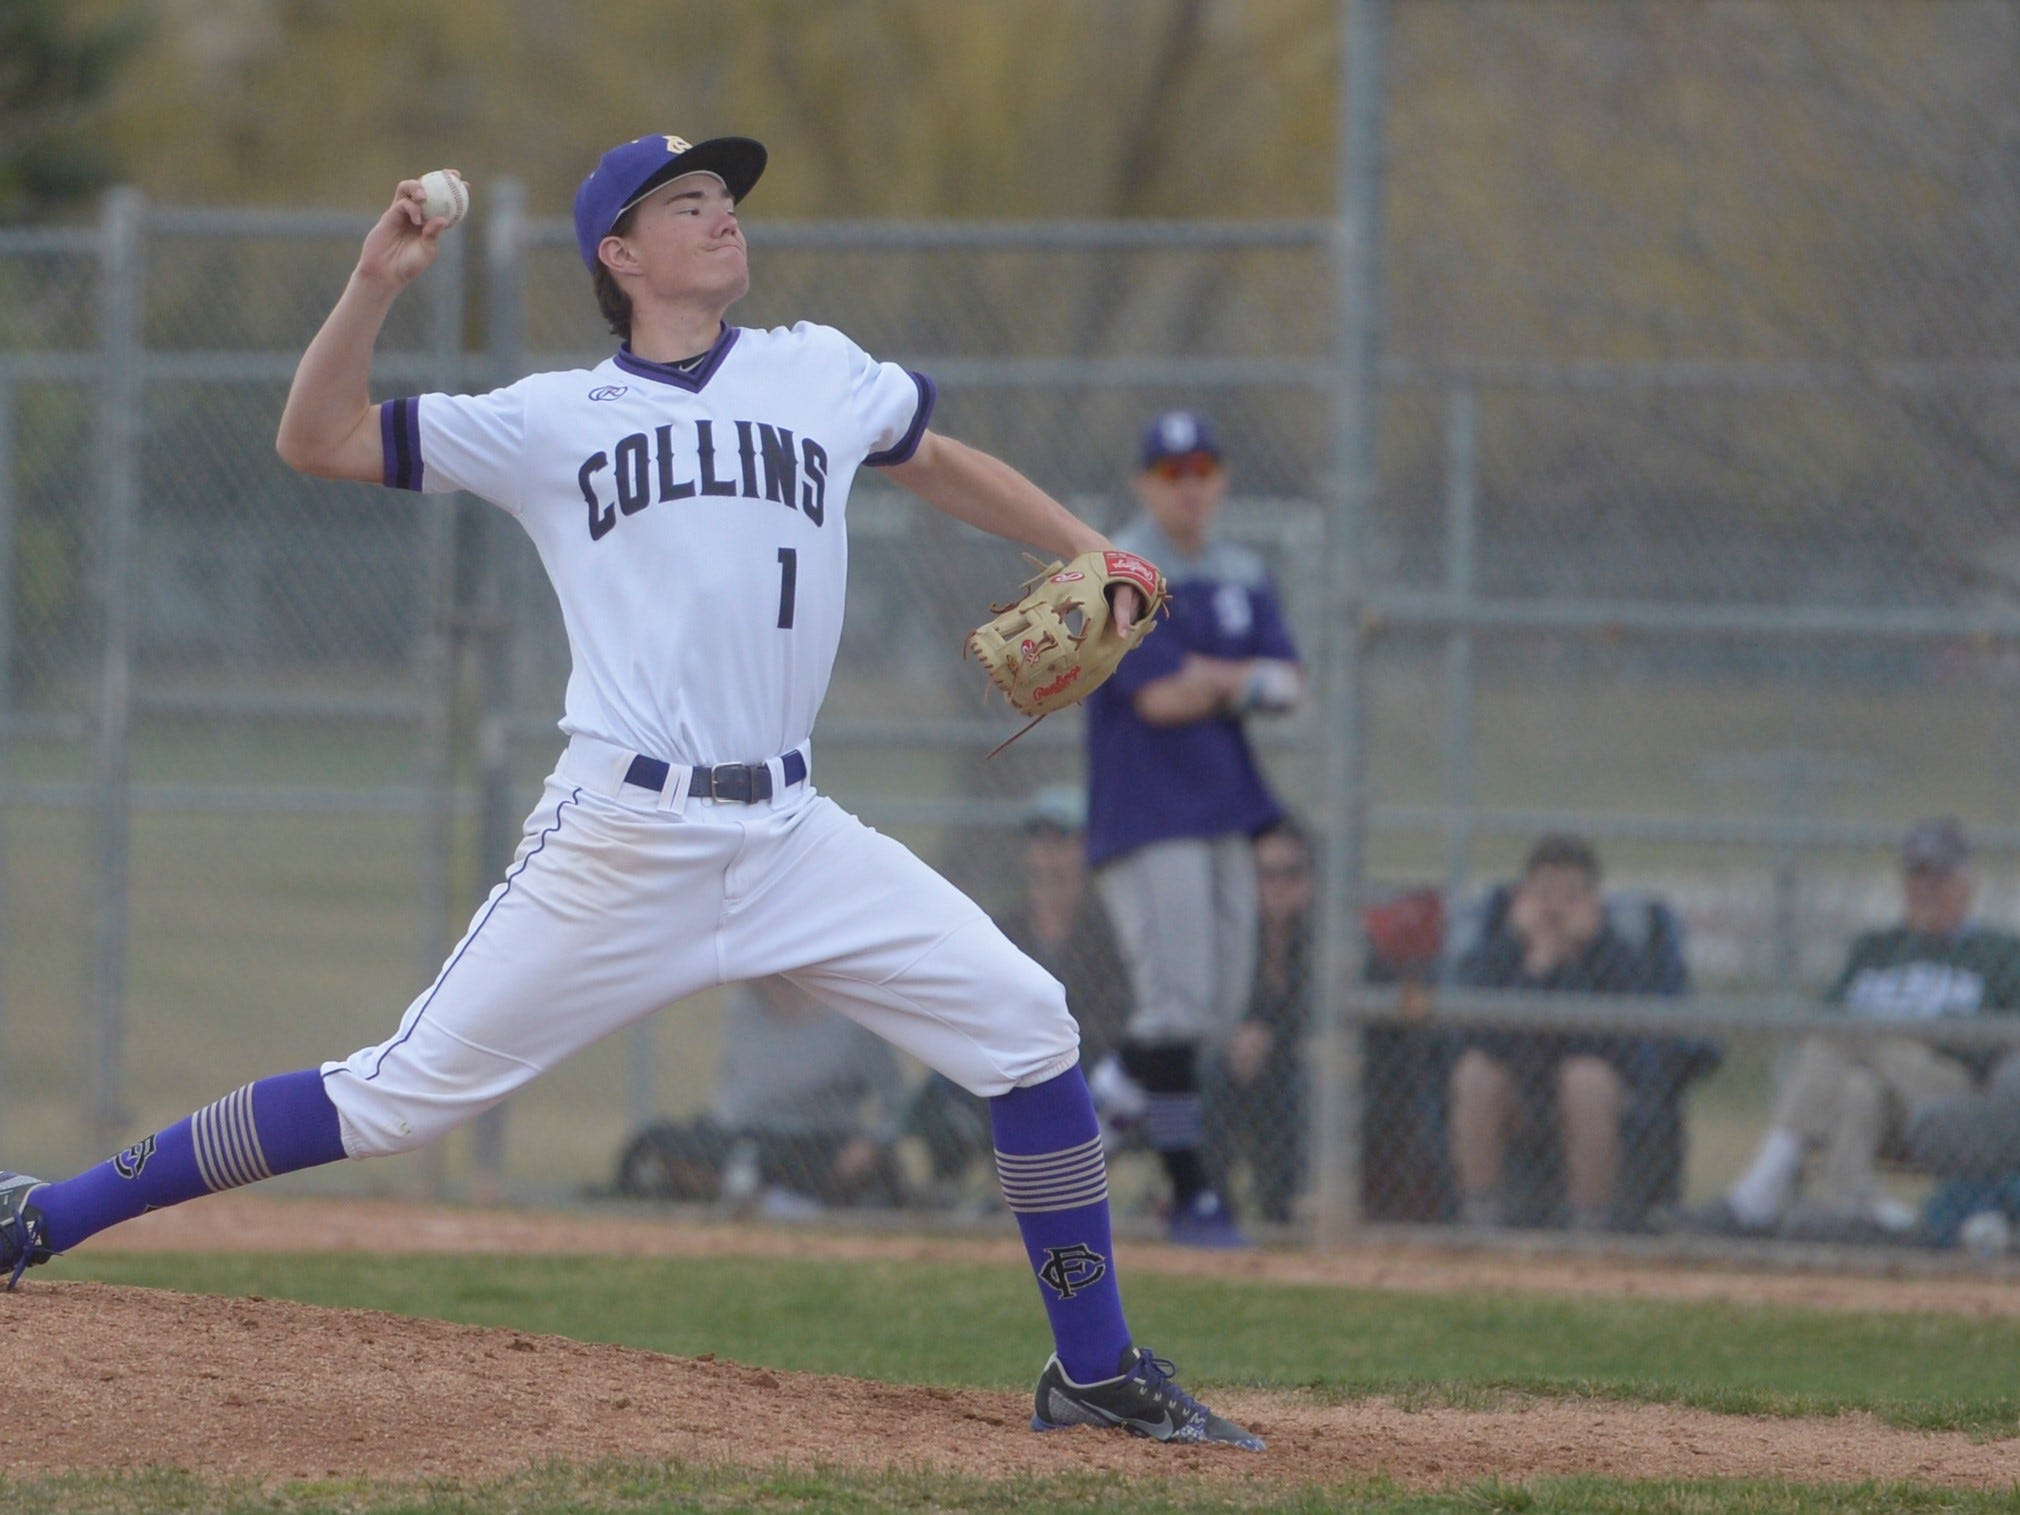 Fort Collins High School baseball pitcher Jonah Meadows pitches during a game against Denver South on Monday, April 8, 2019. The Lambkins won 13-3 to move to 10-0 on the season.